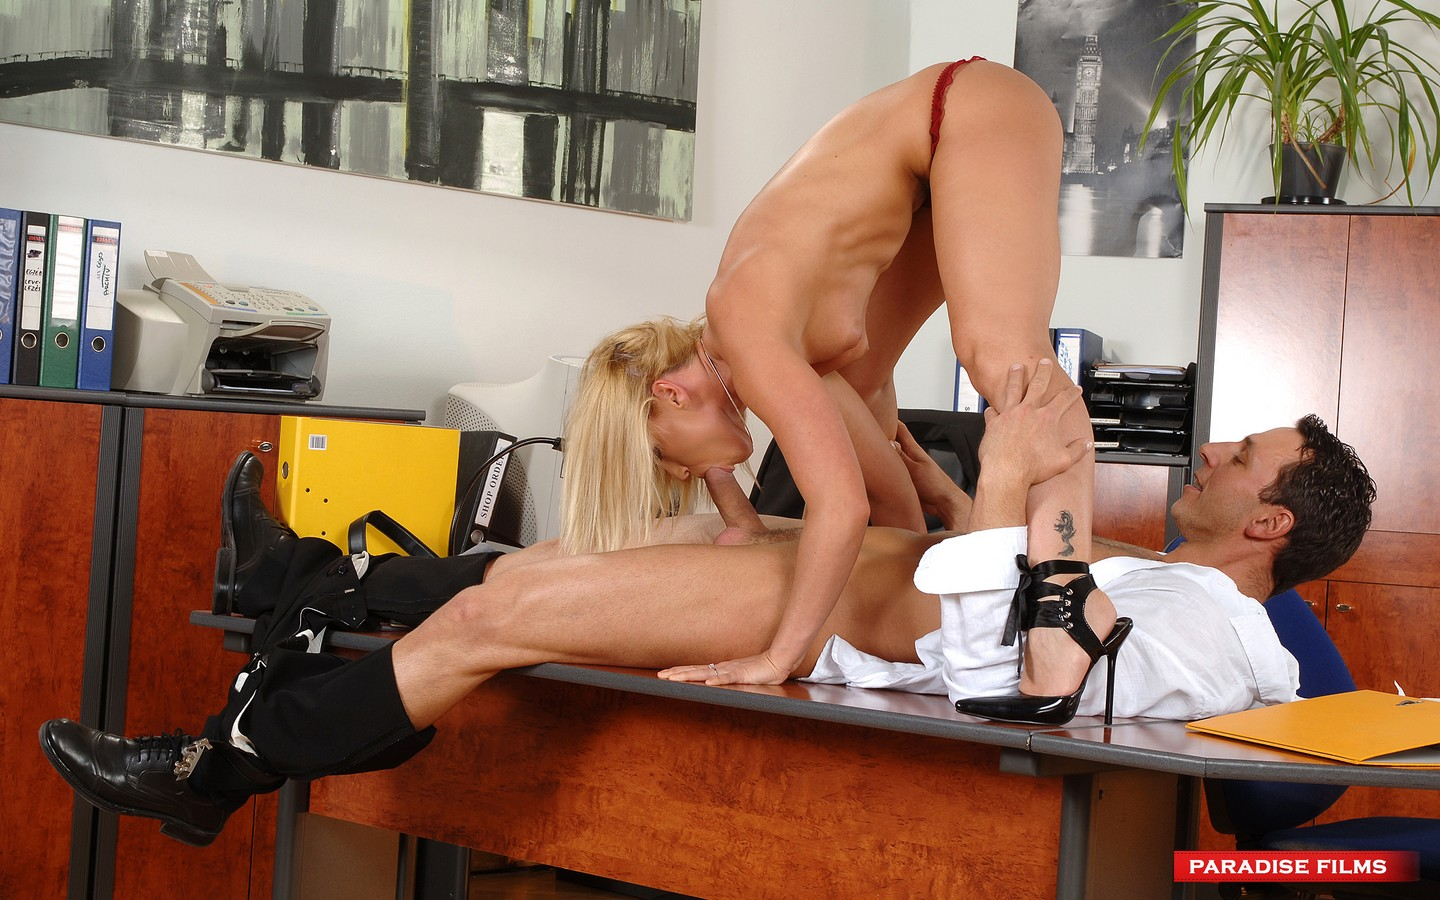 Pure xxx films blonde busty babe victoria summers - 1 part 4